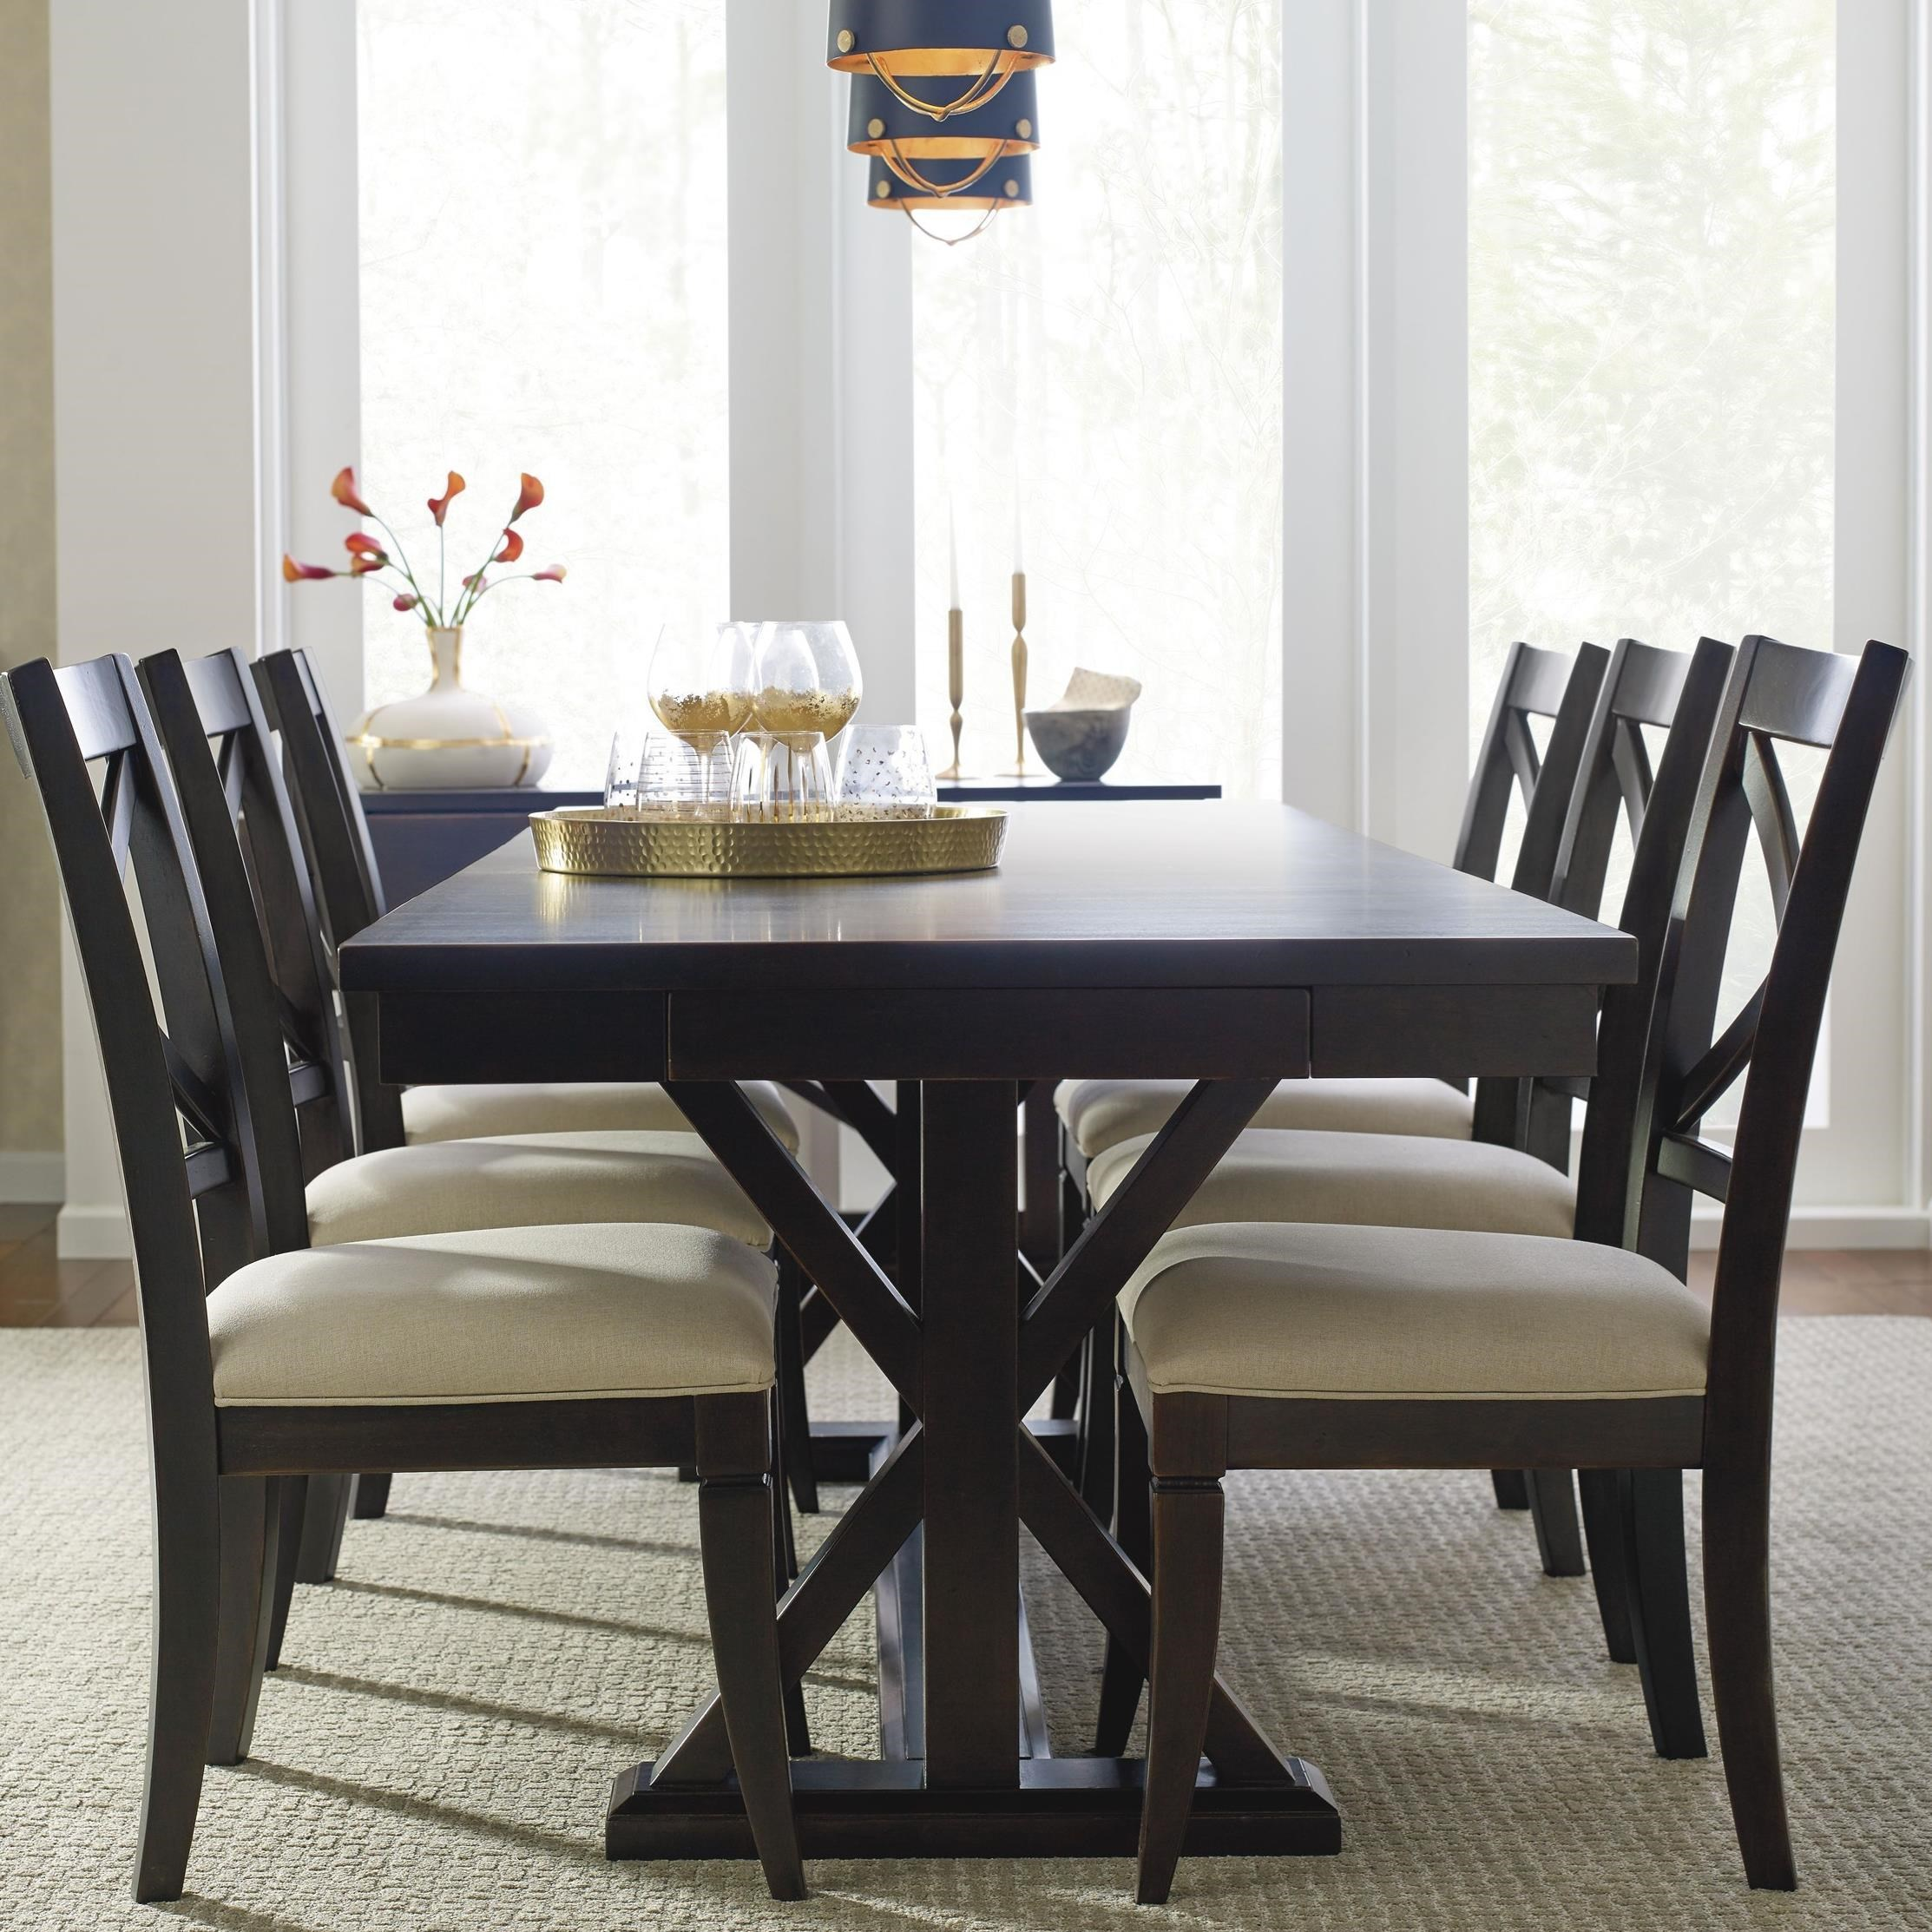 Rachael Ray Home By Legacy Classic Everyday Dining Trestle Dining Table With Leaf And 6 Upholstered Side Chairs Furniture Barn Dining 7 Or More Piece Sets